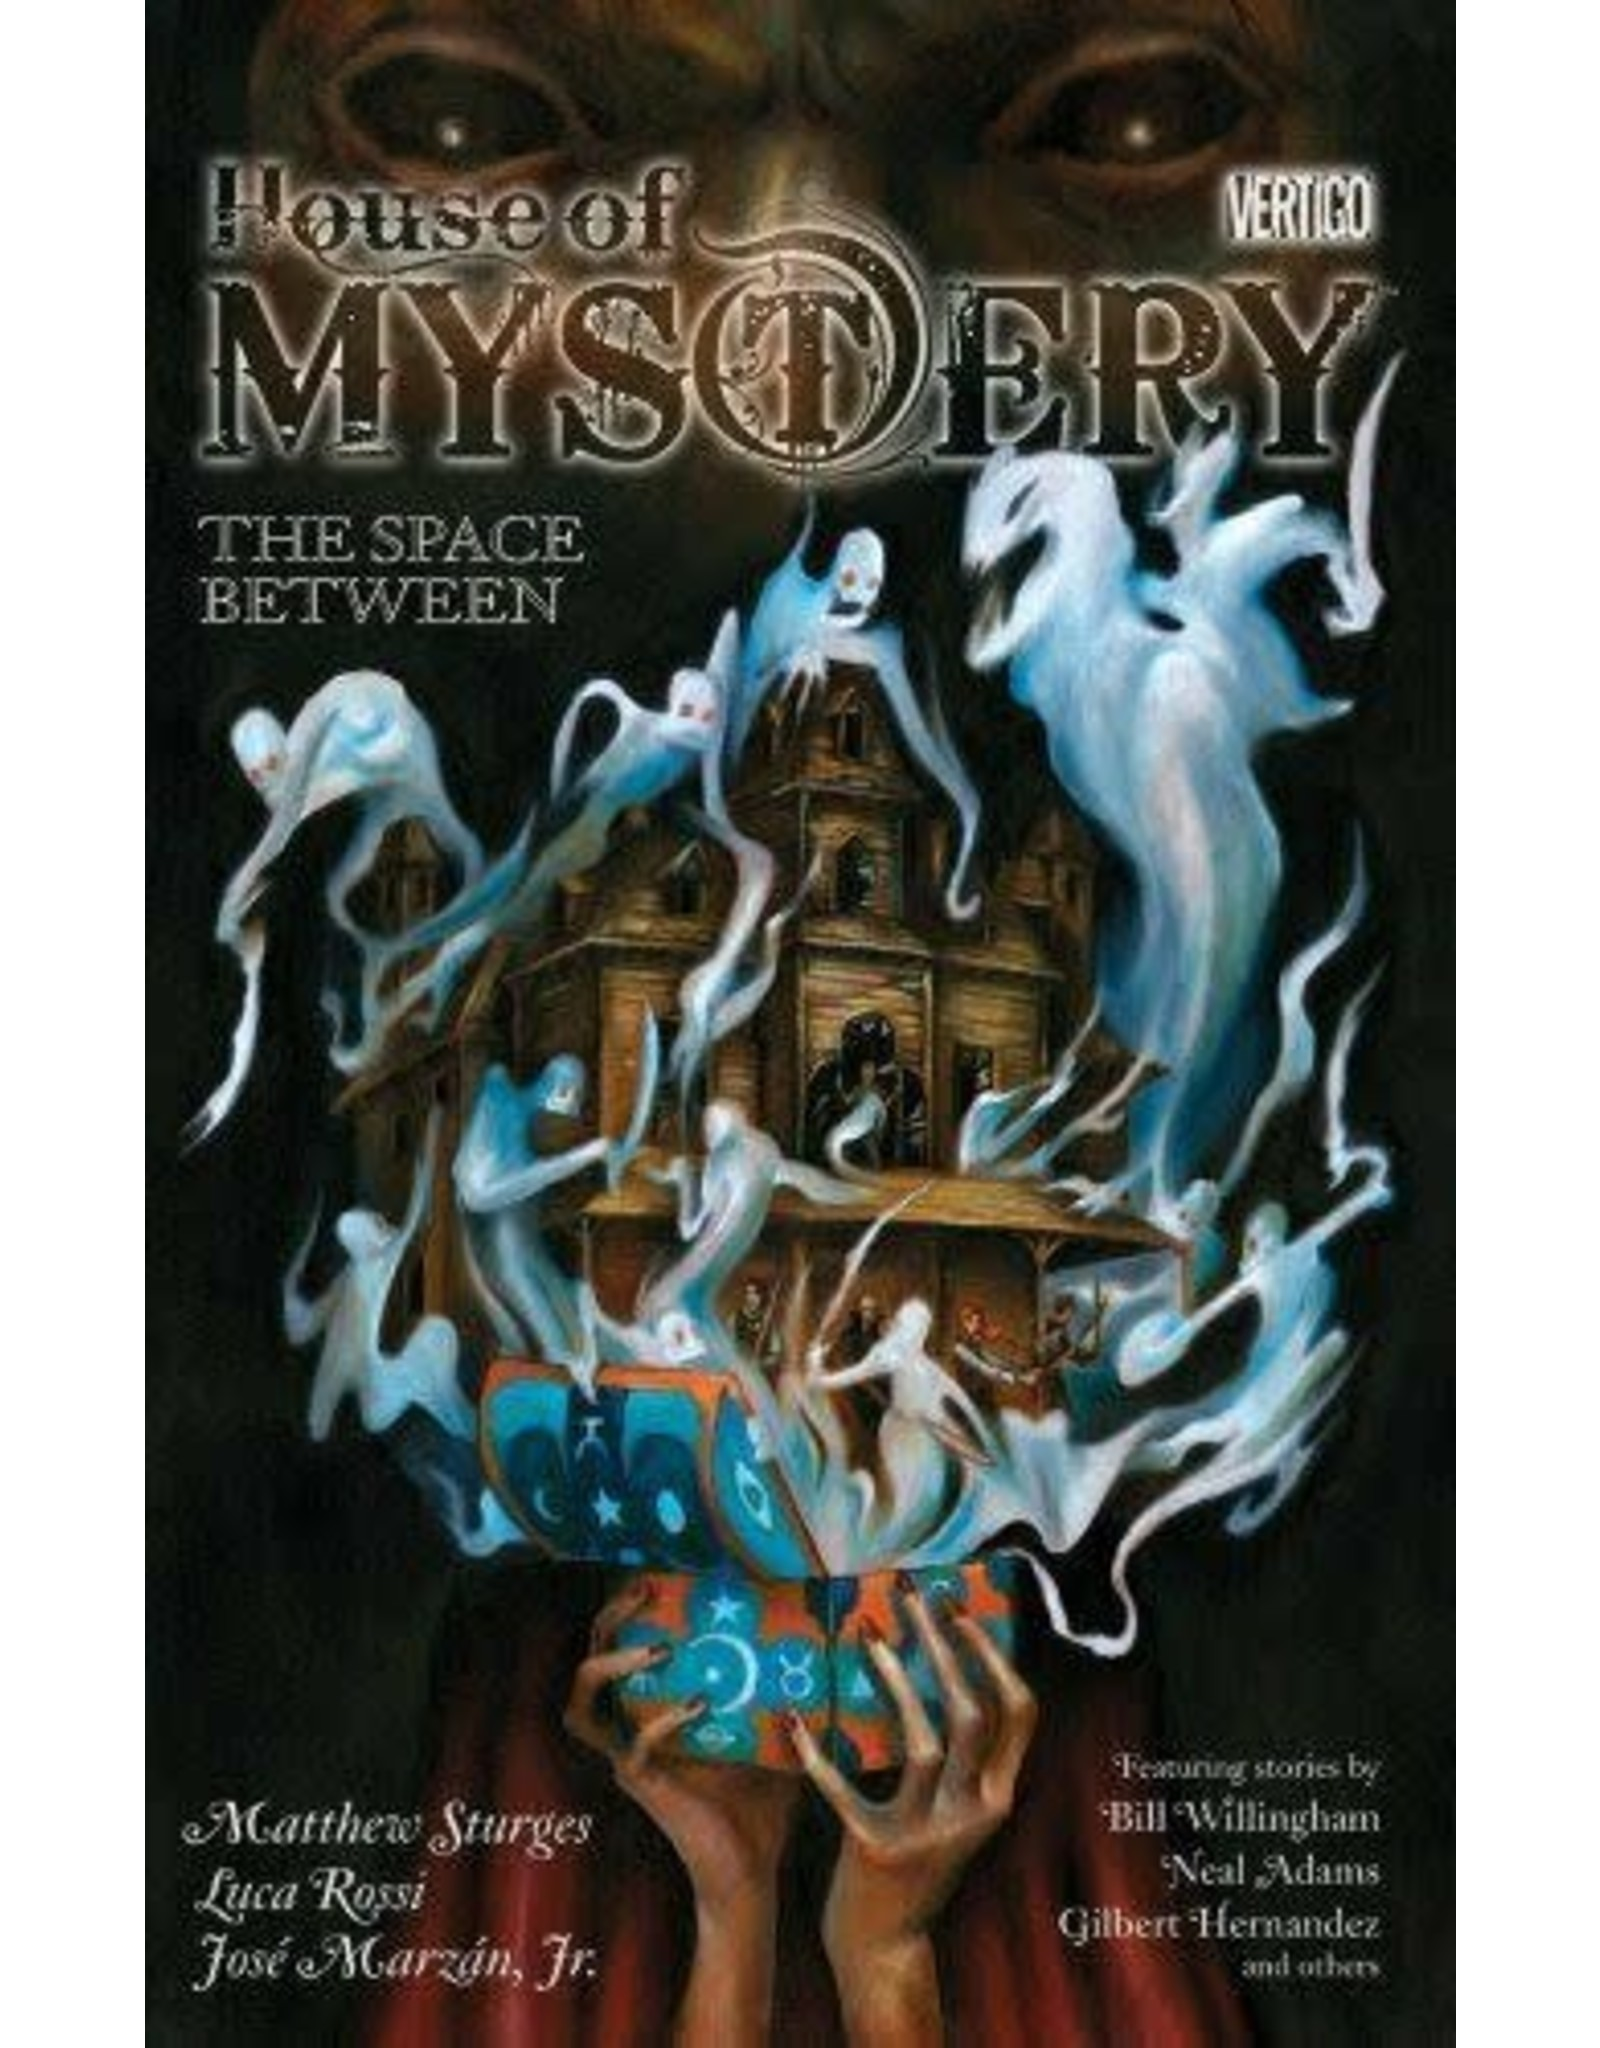 DC COMICS HOUSE OF MYSTERY TP VOL 03 THE SPACE BETWEEN